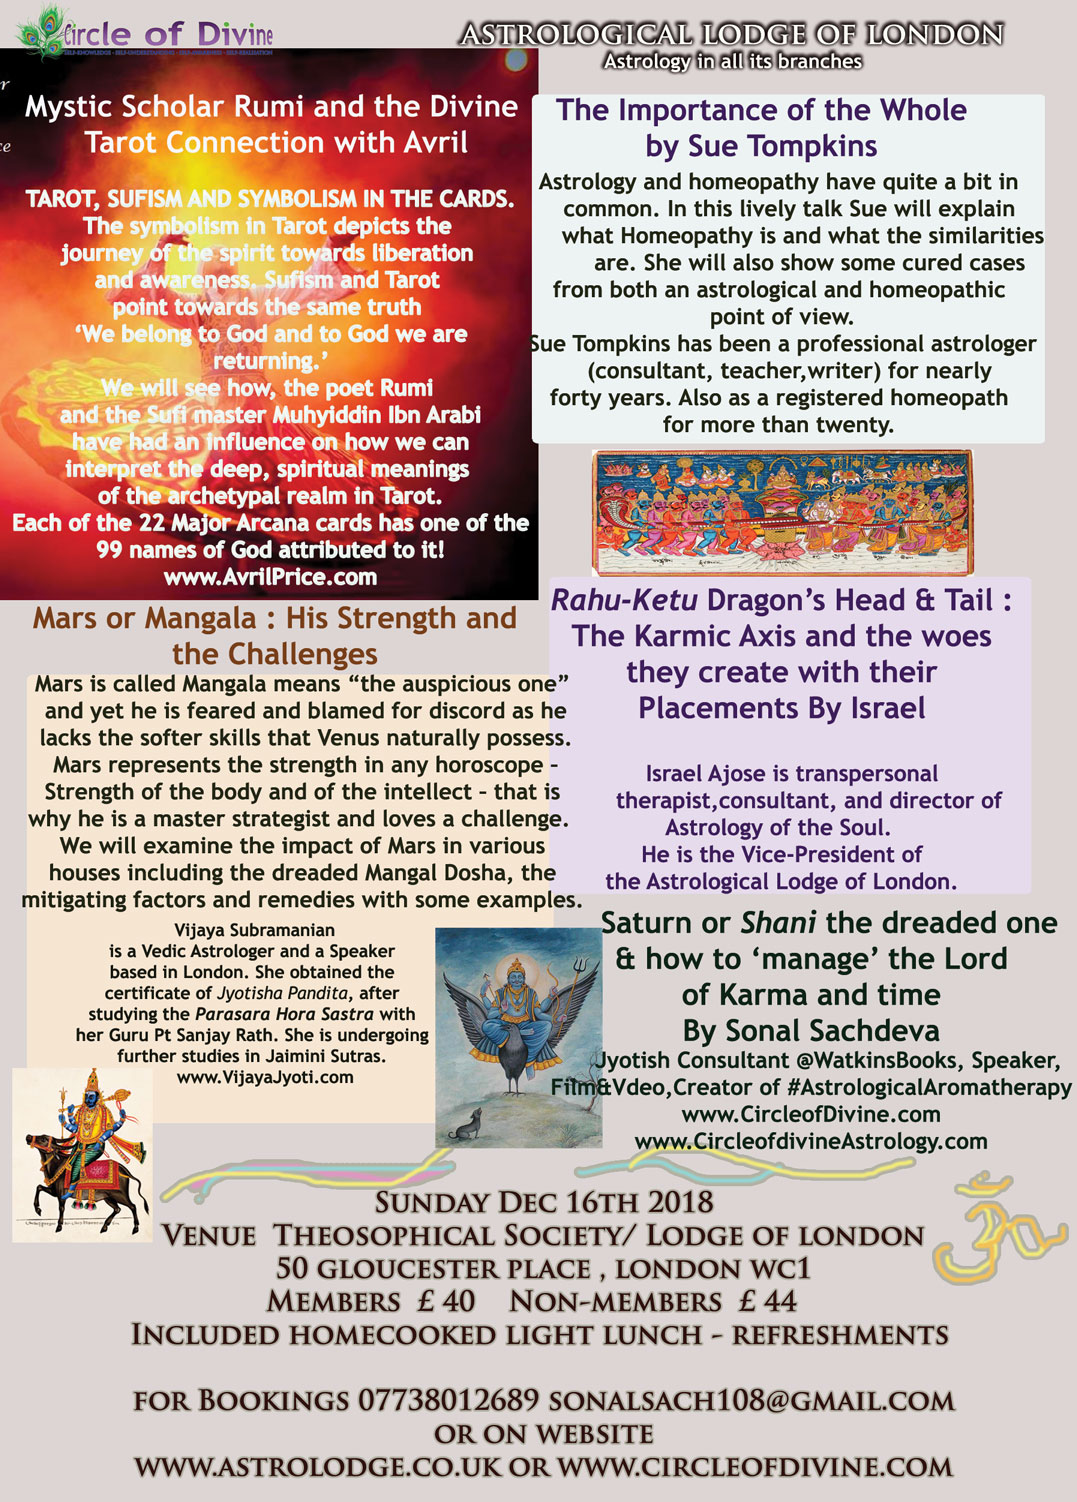 Upcoming Talks/Events – Circle of Divine Astrology